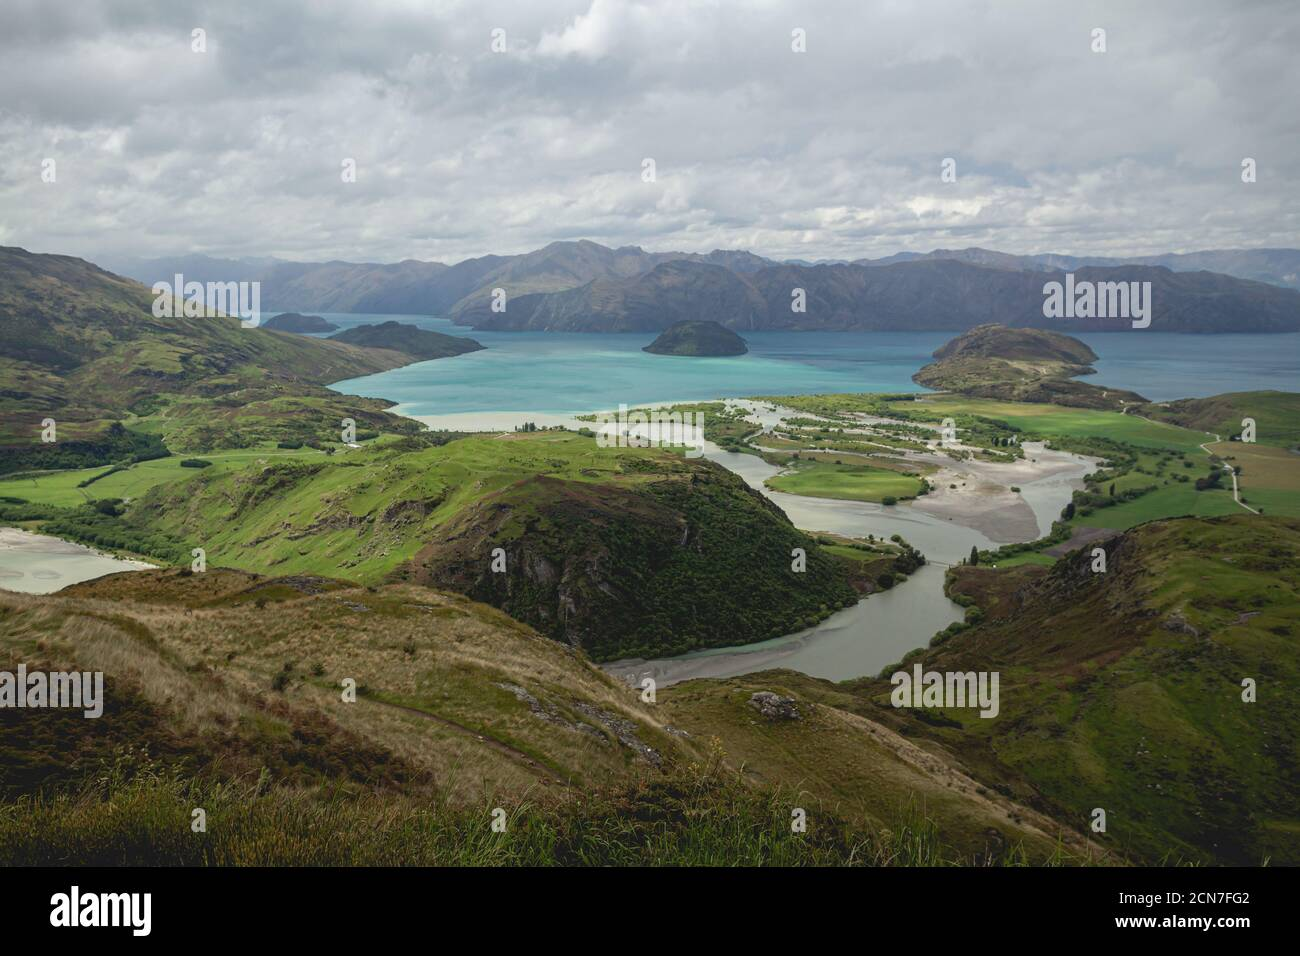 The view of Lake Wanaka from the top of Rocky Mountain in New Zealand Stock Photo